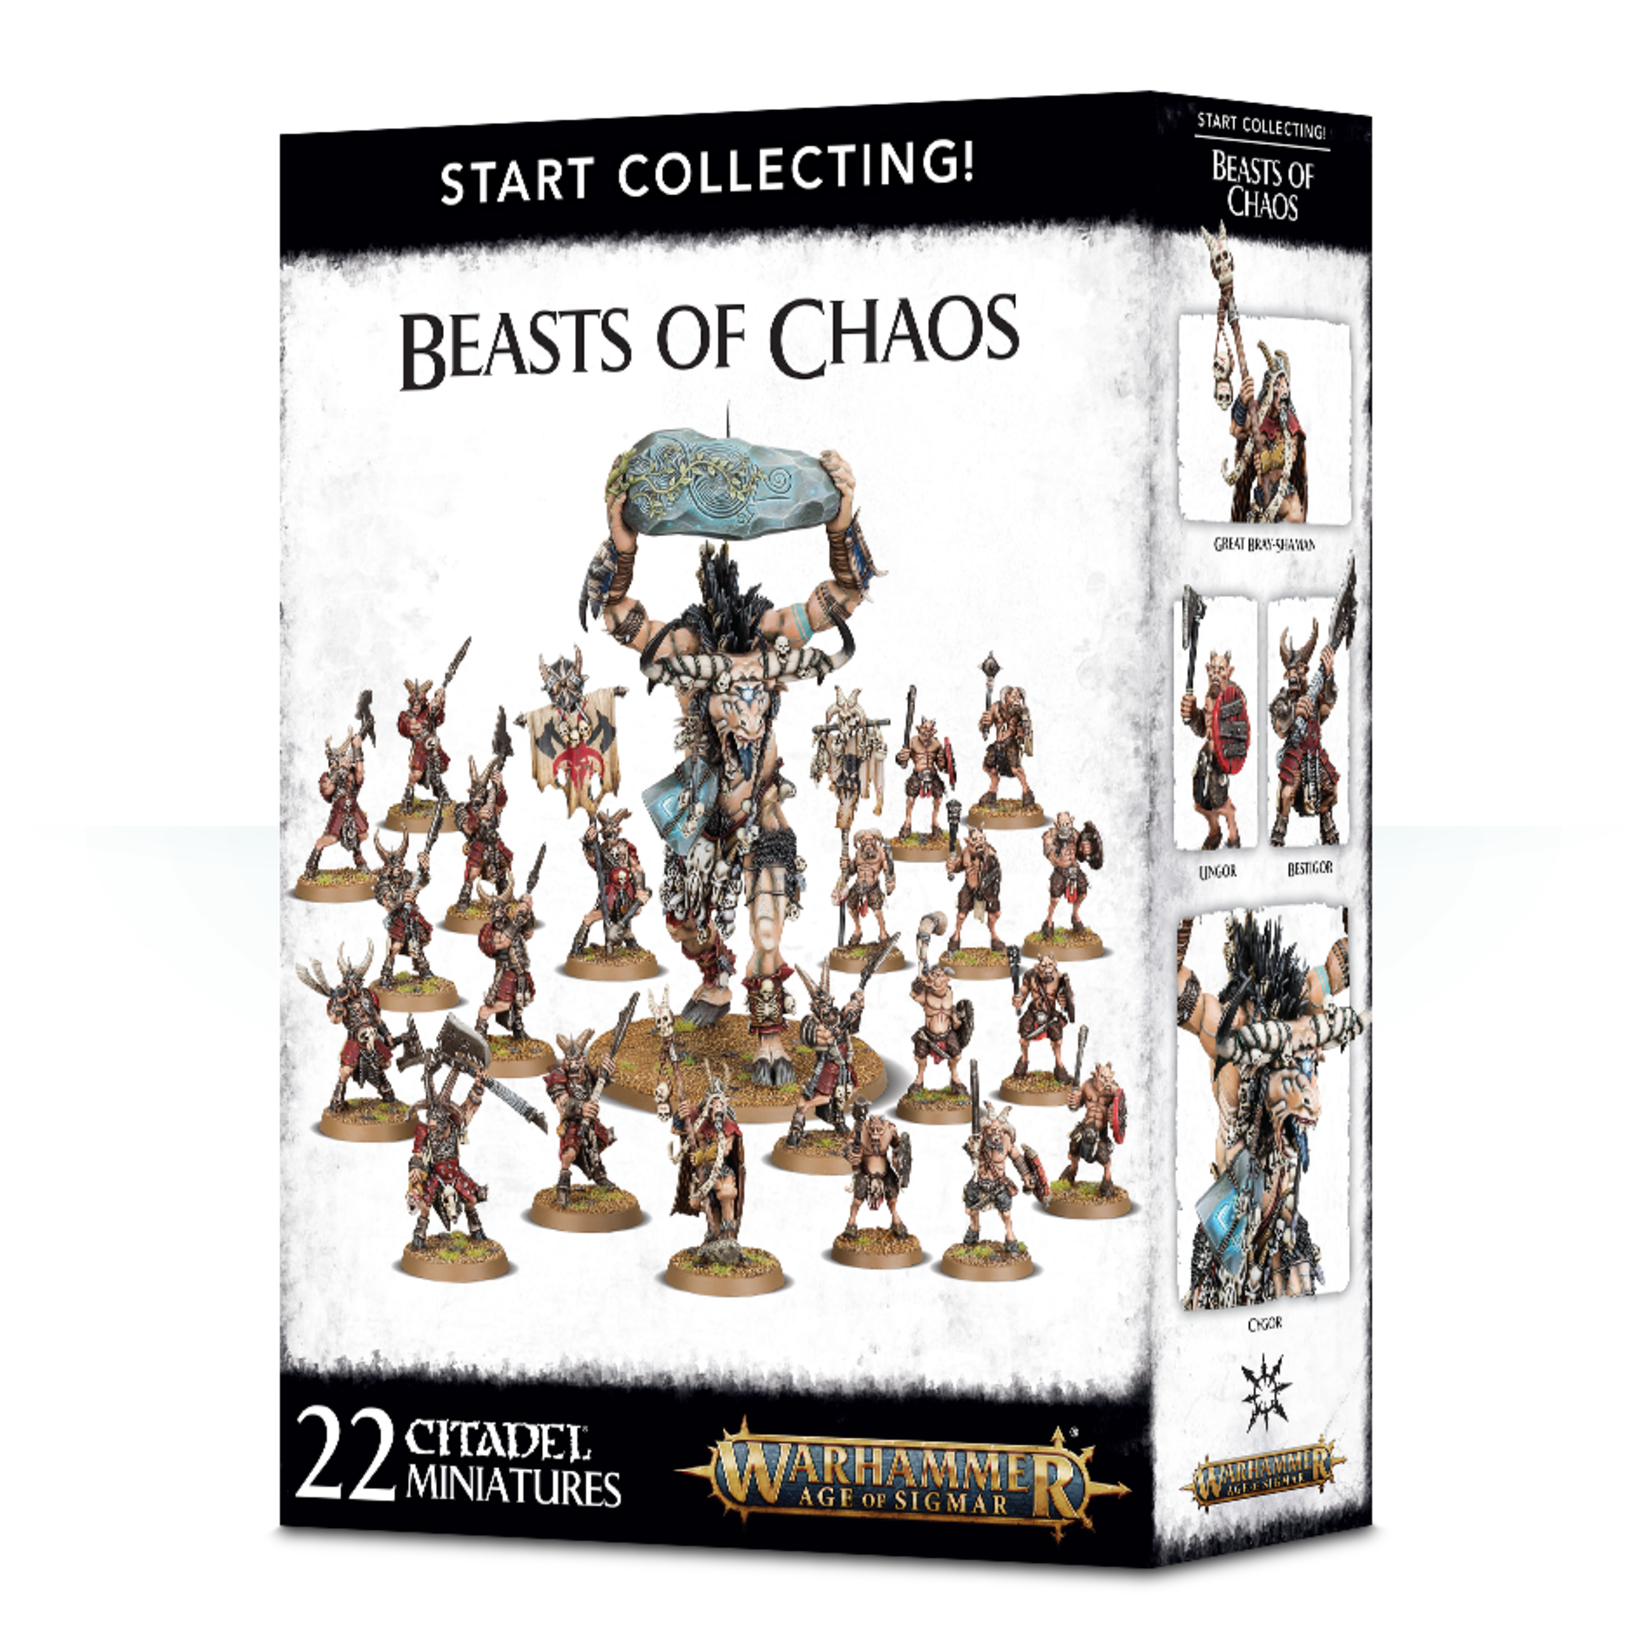 Games Workshop Warhammer Age of Sigmar: Start Collecting! Beasts of Chaos